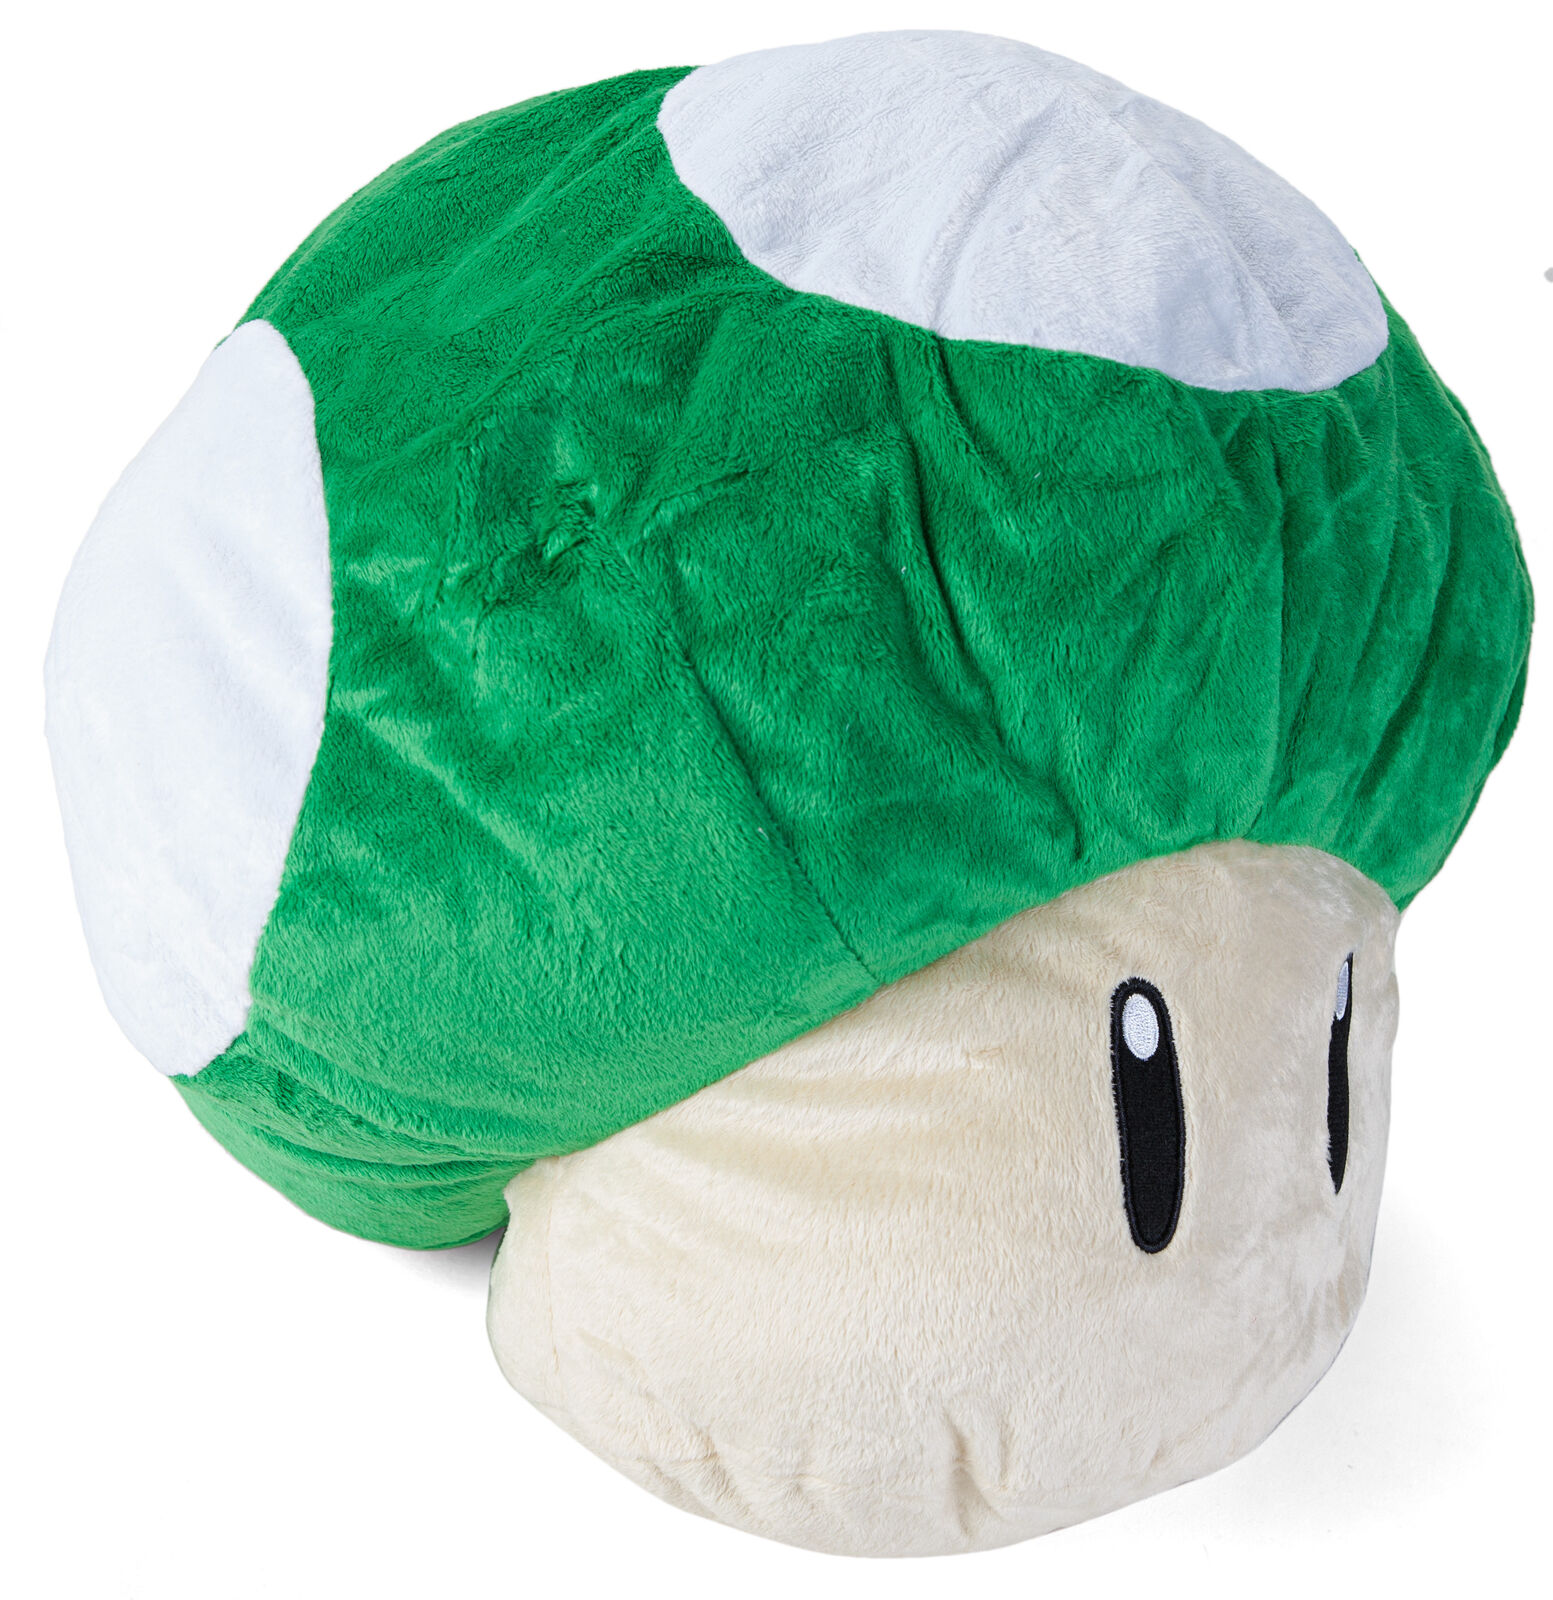 Super Mario Bros. 1-UP Mushroom 12 Inch Plush Cushion